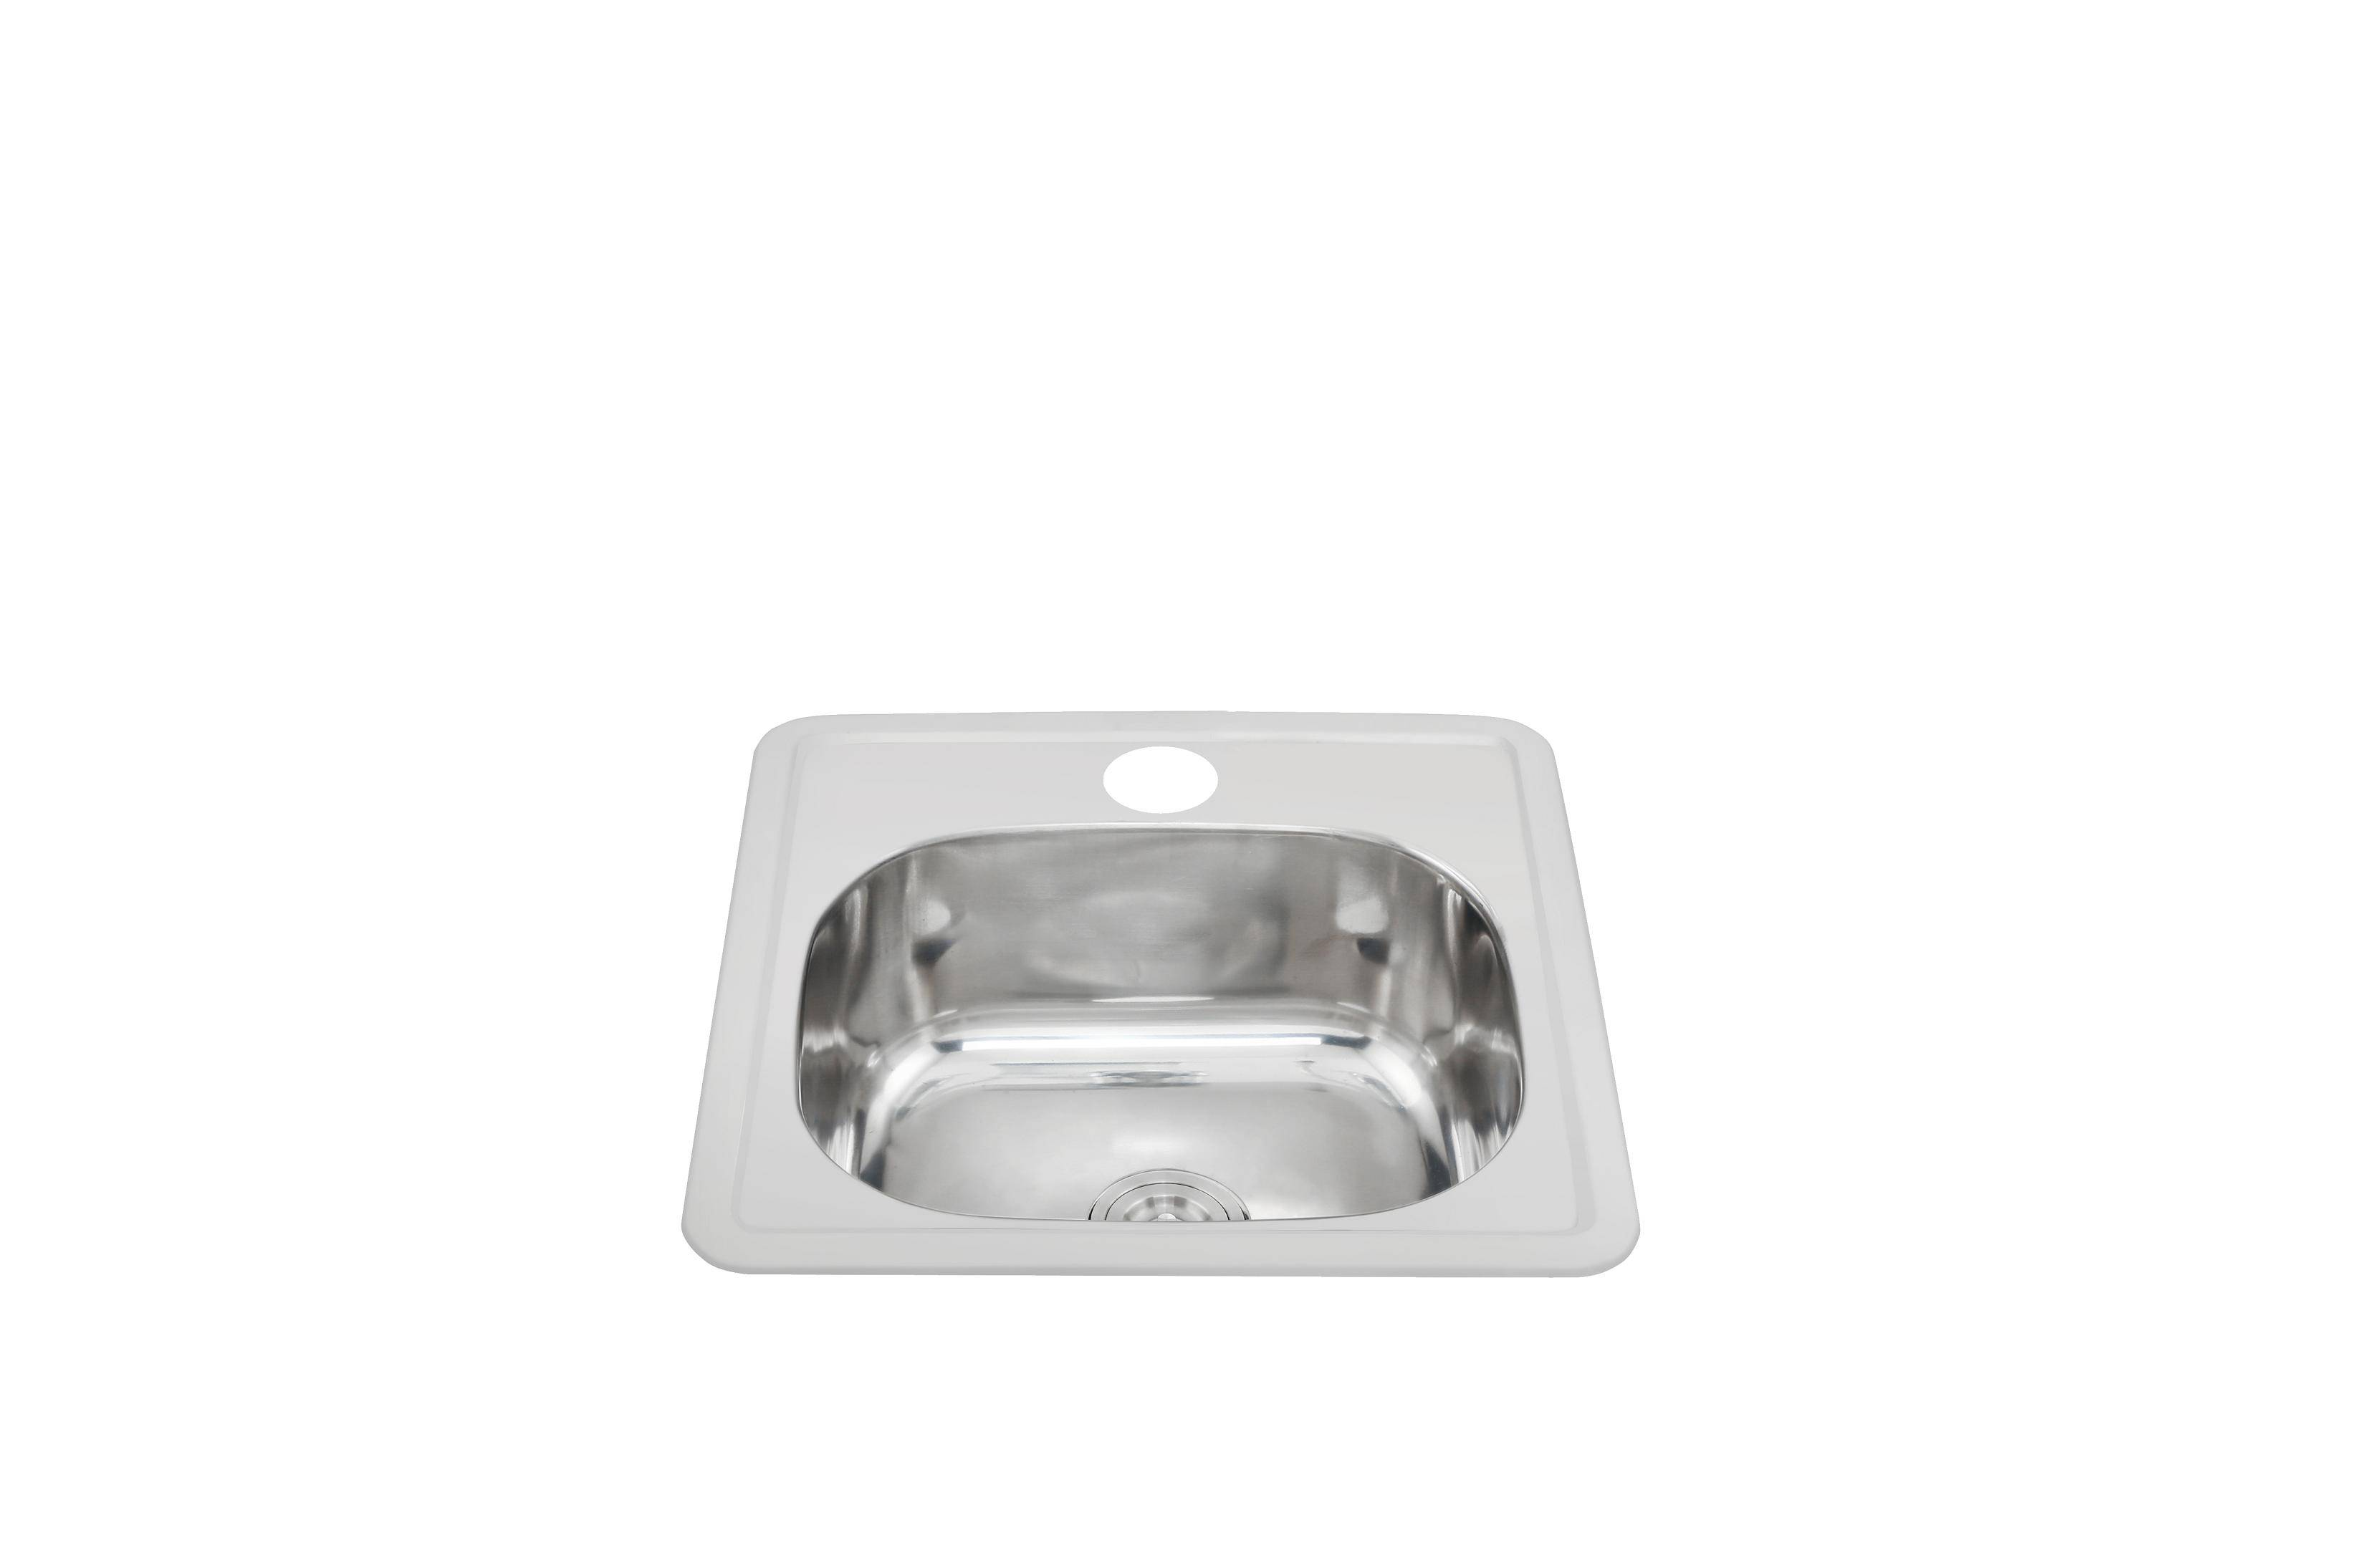 Small size cheap square bowl kitchen sink WY-3838A